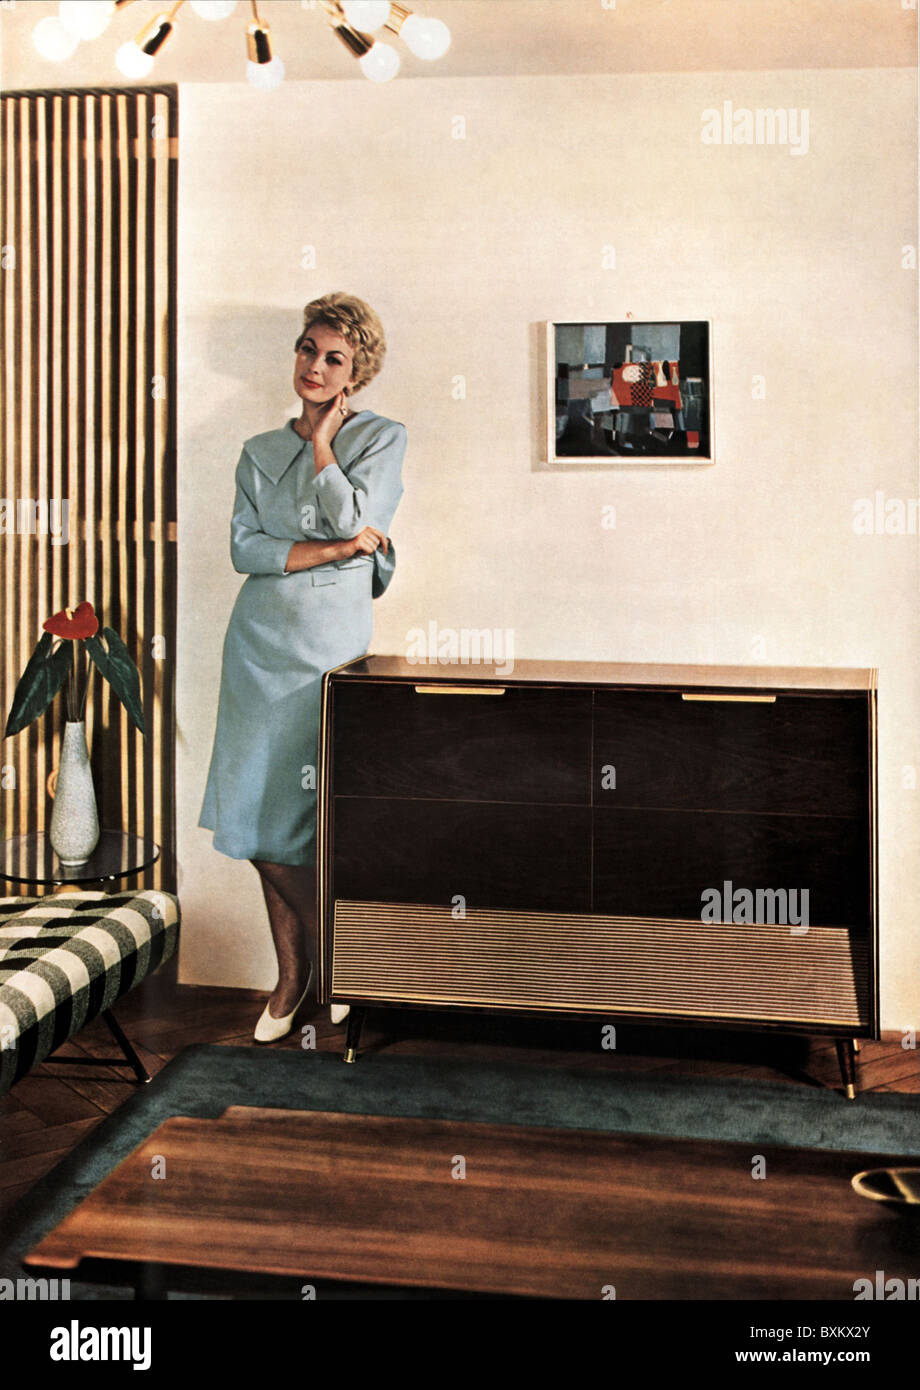 Record Player 1950s Stock Photos Amp Record Player 1950s